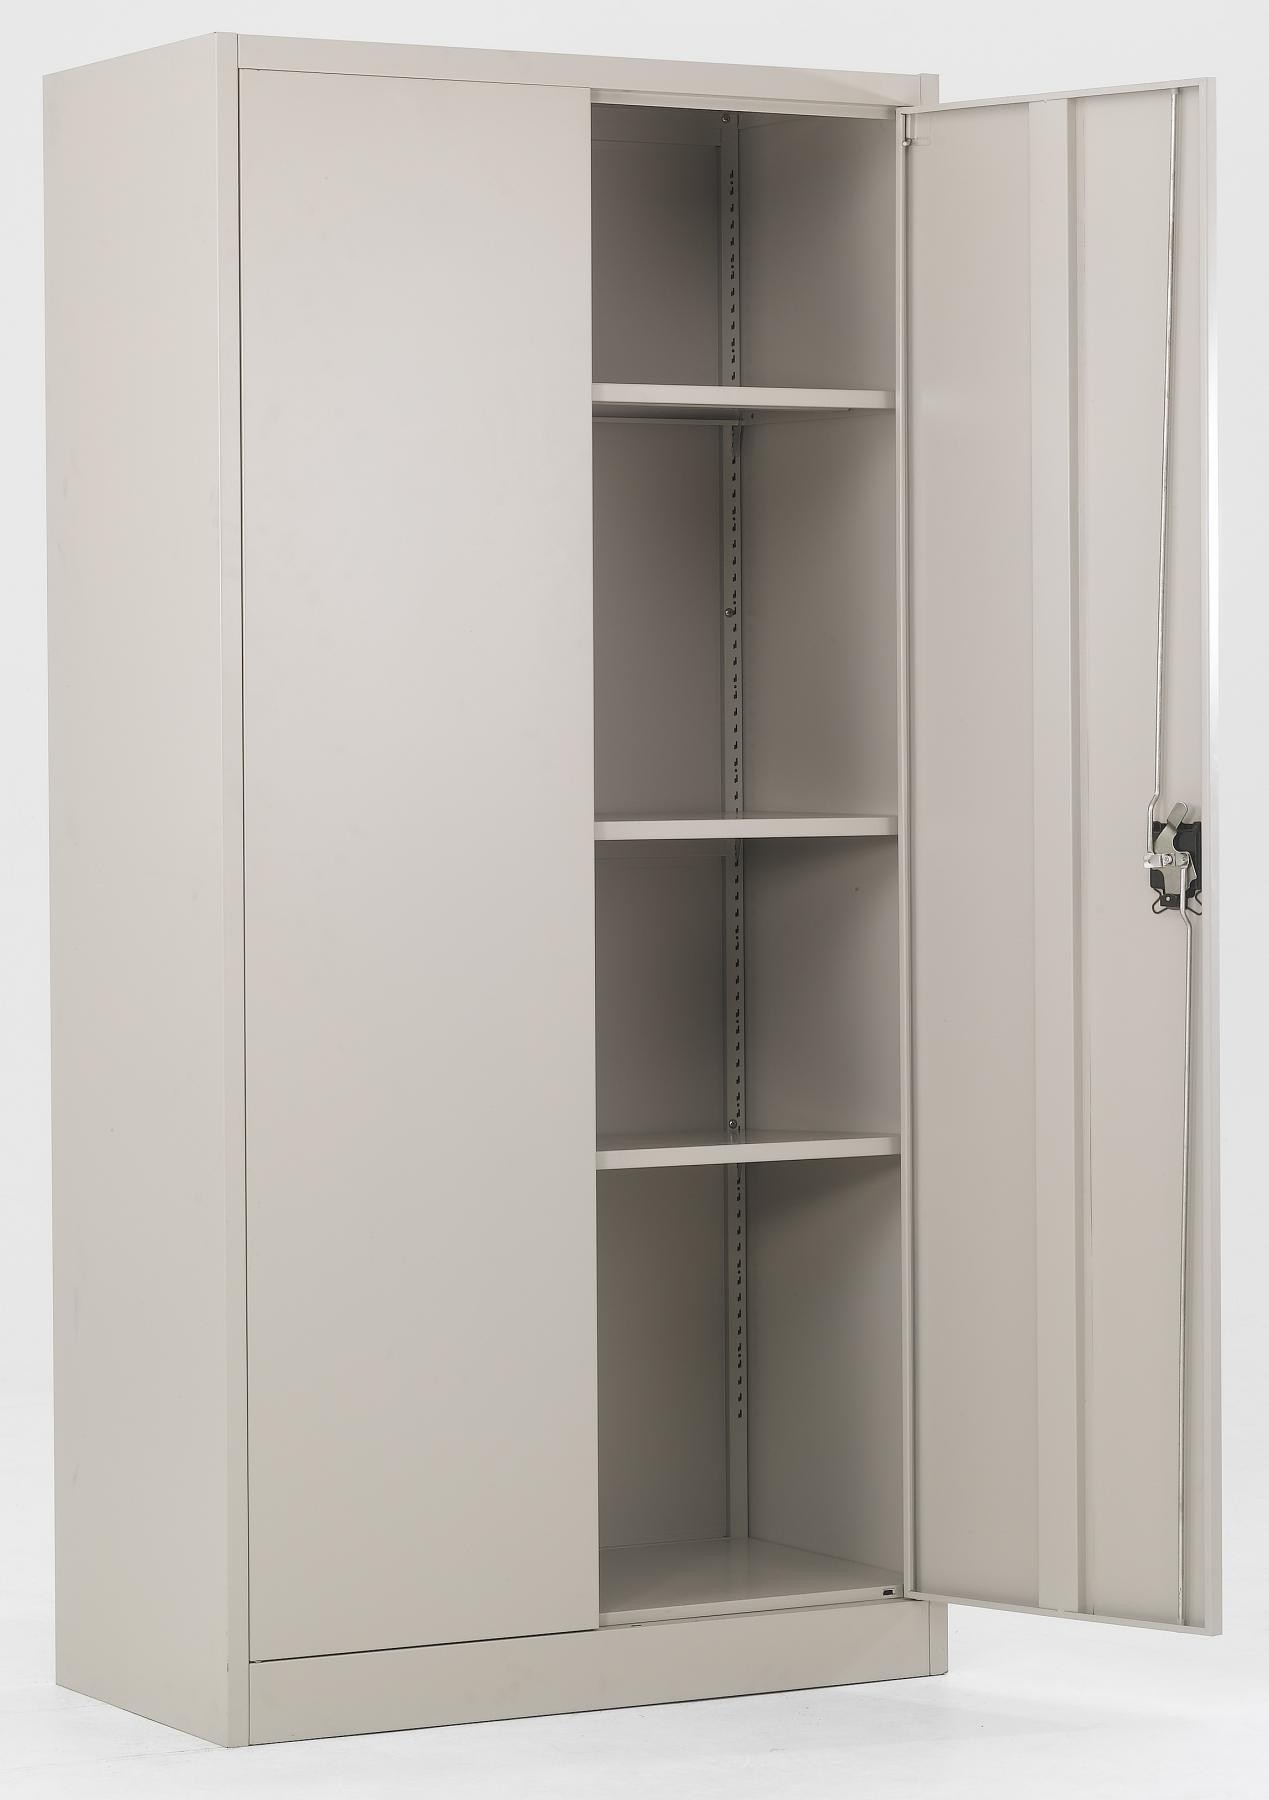 Pack Large Express Delivery Cupboard Throughout Large Cupboard With Shelves (#12 of 15)